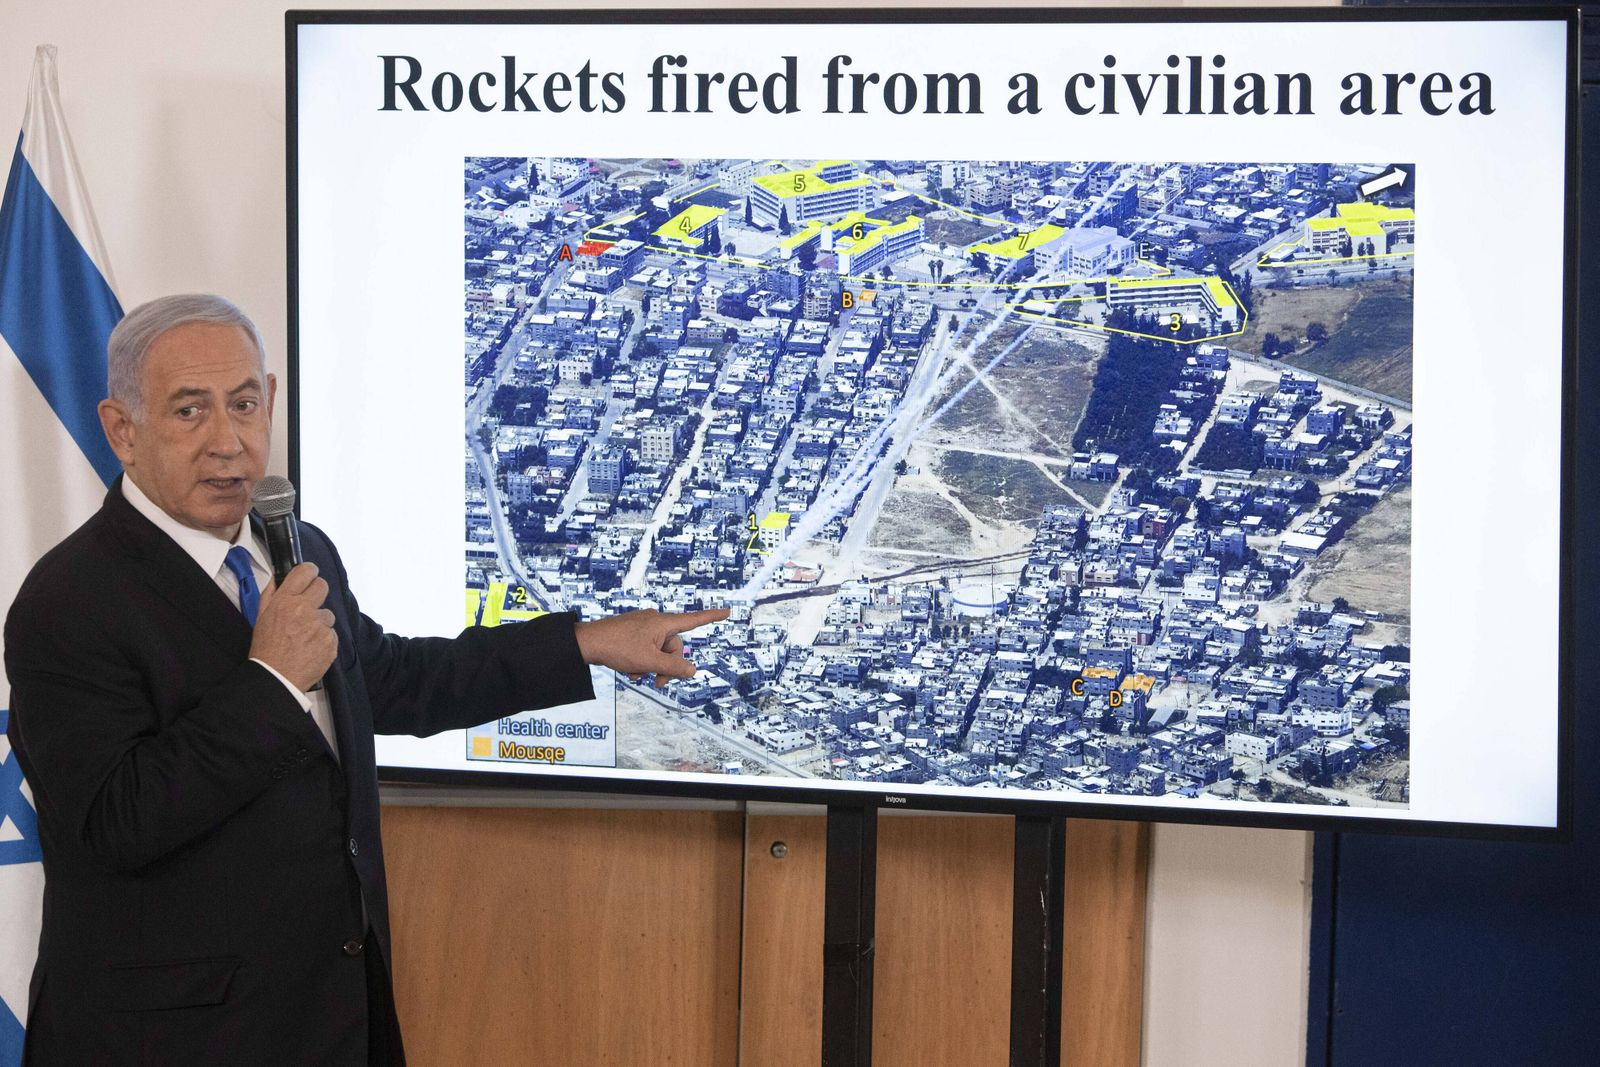 Israeli Prime Minister Benjamin Netanyahu gestures as he shows a slideshow during a briefing to ambassadors to Israel, a